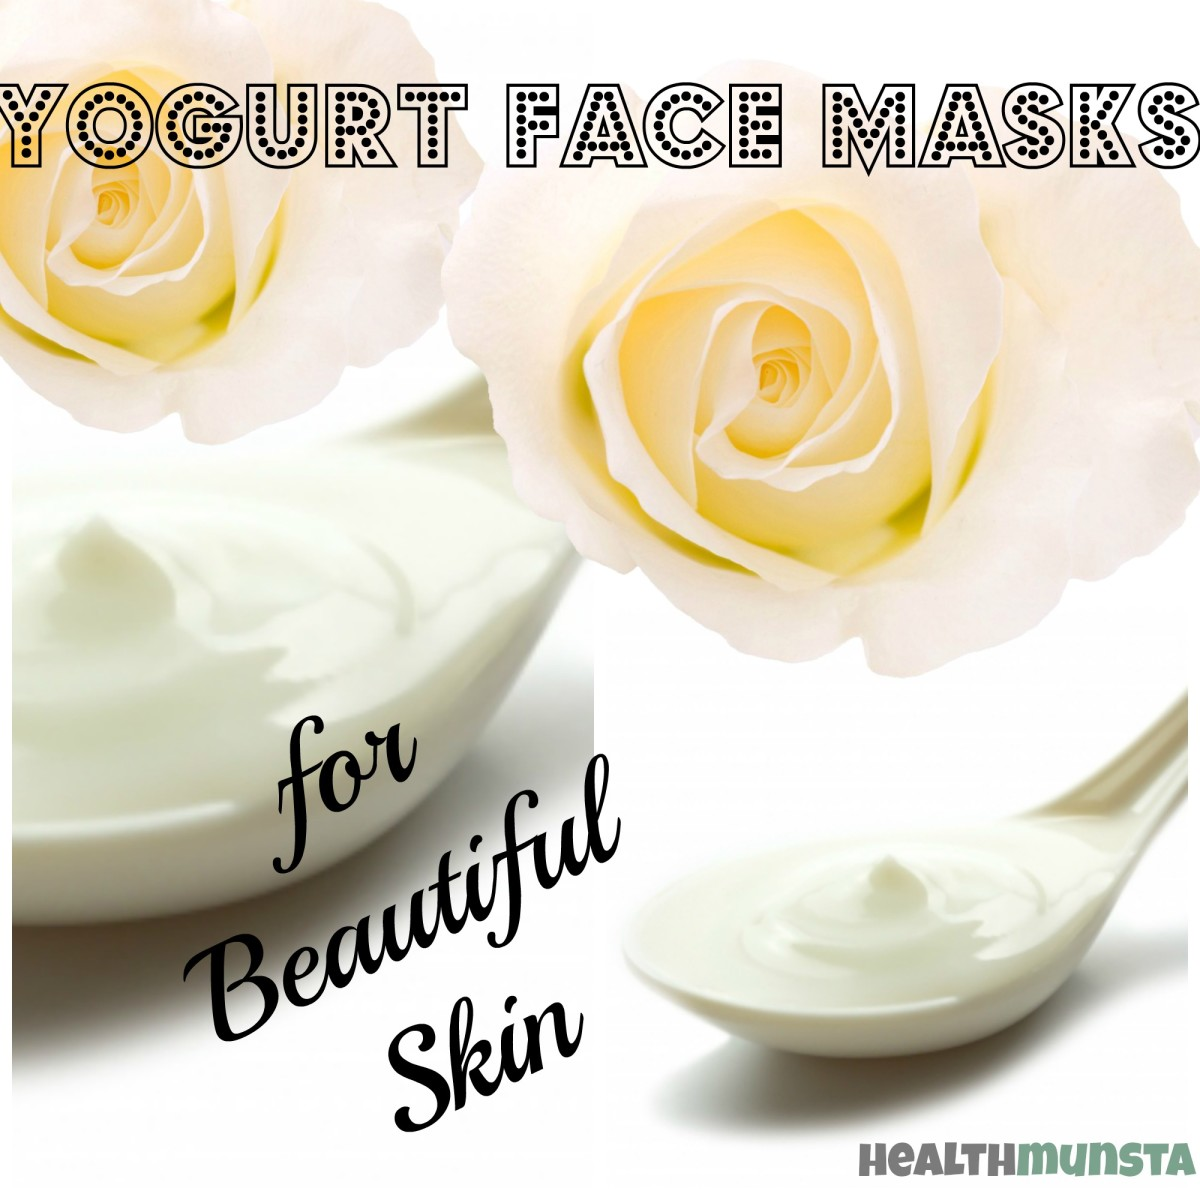 Here are recipes for awesome yogurt face masks to give your skin a natural glow!